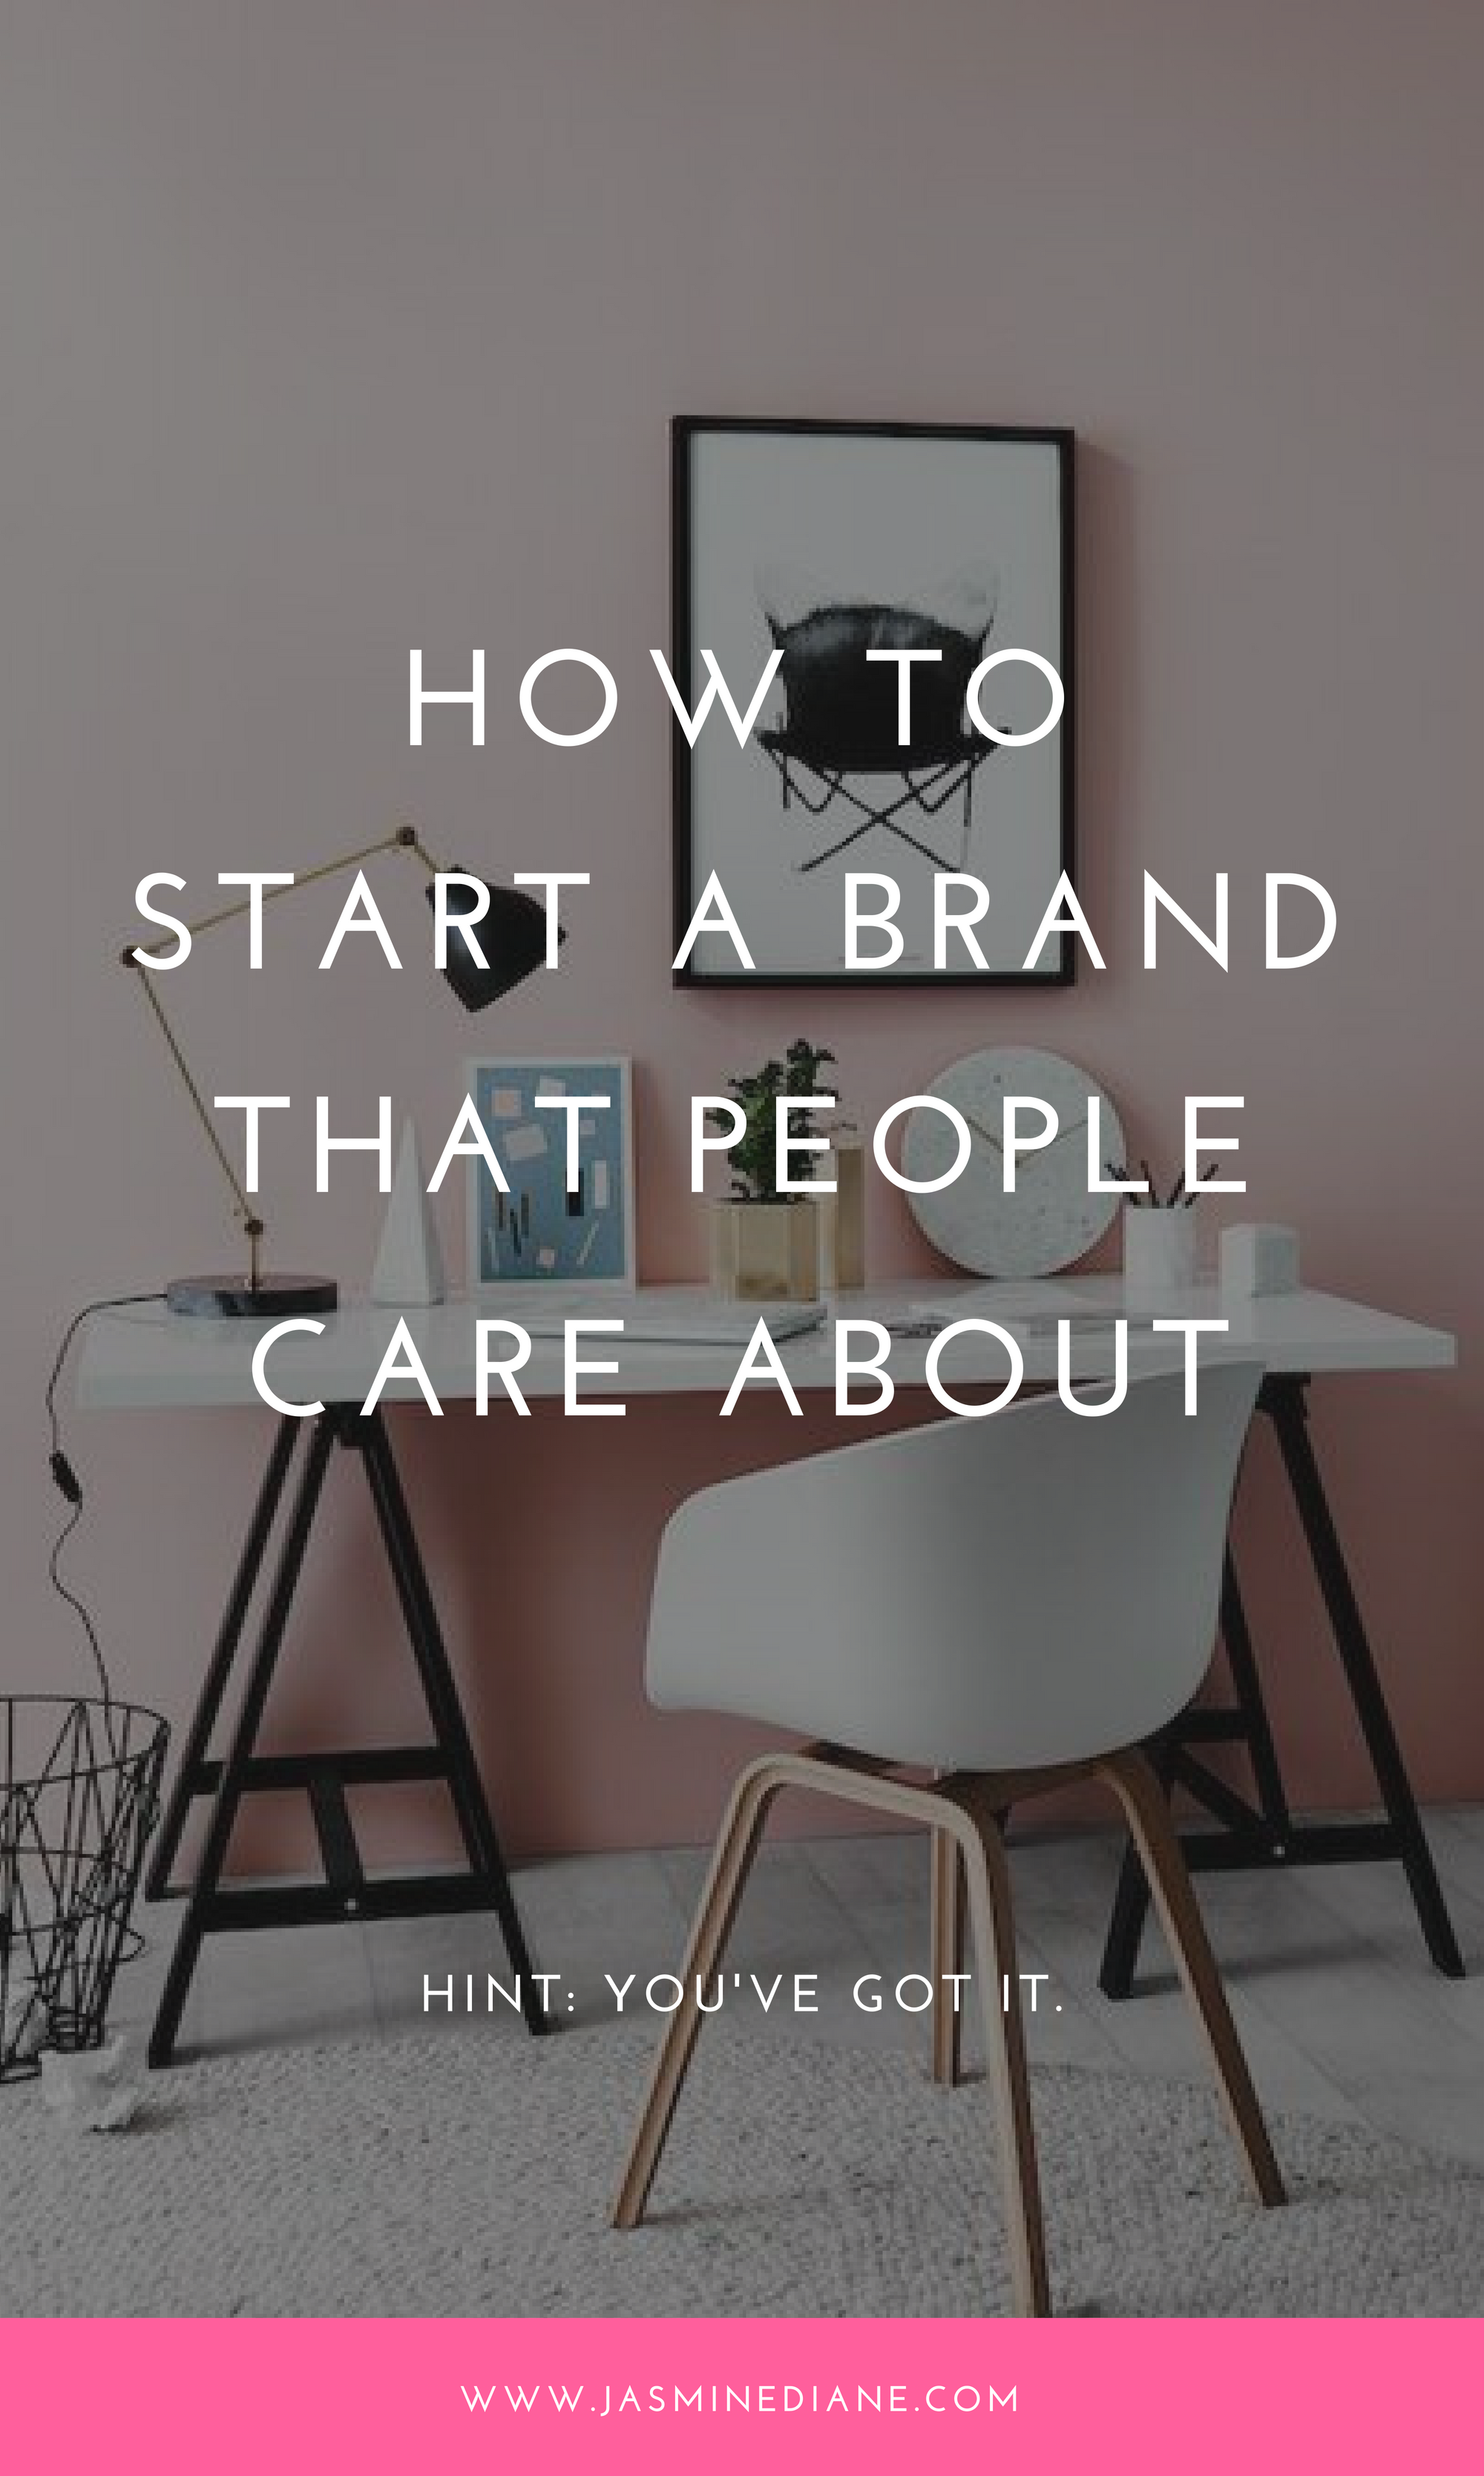 How to start a brand people care about